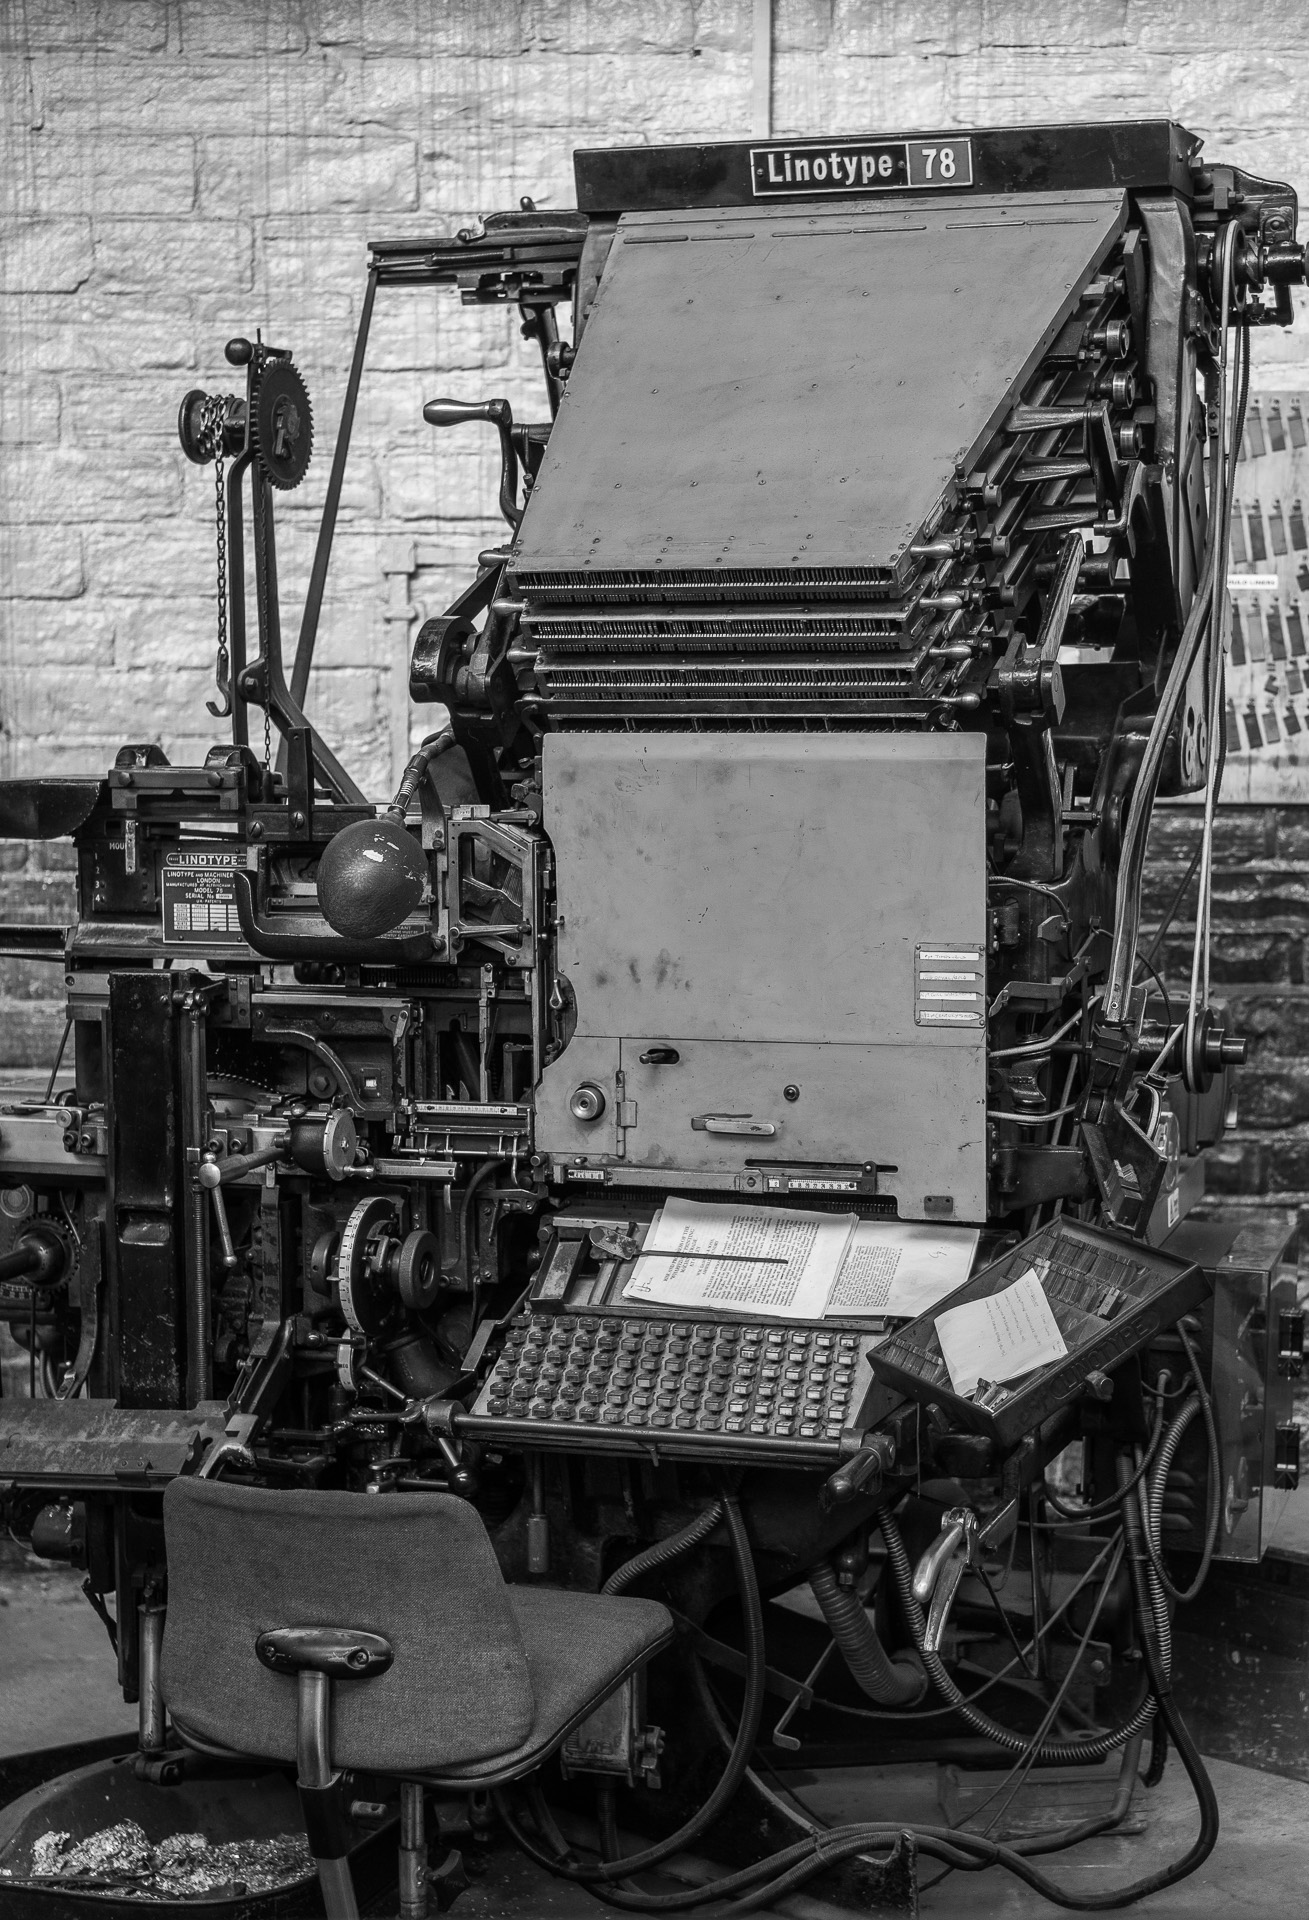 Linotype Printing Machine